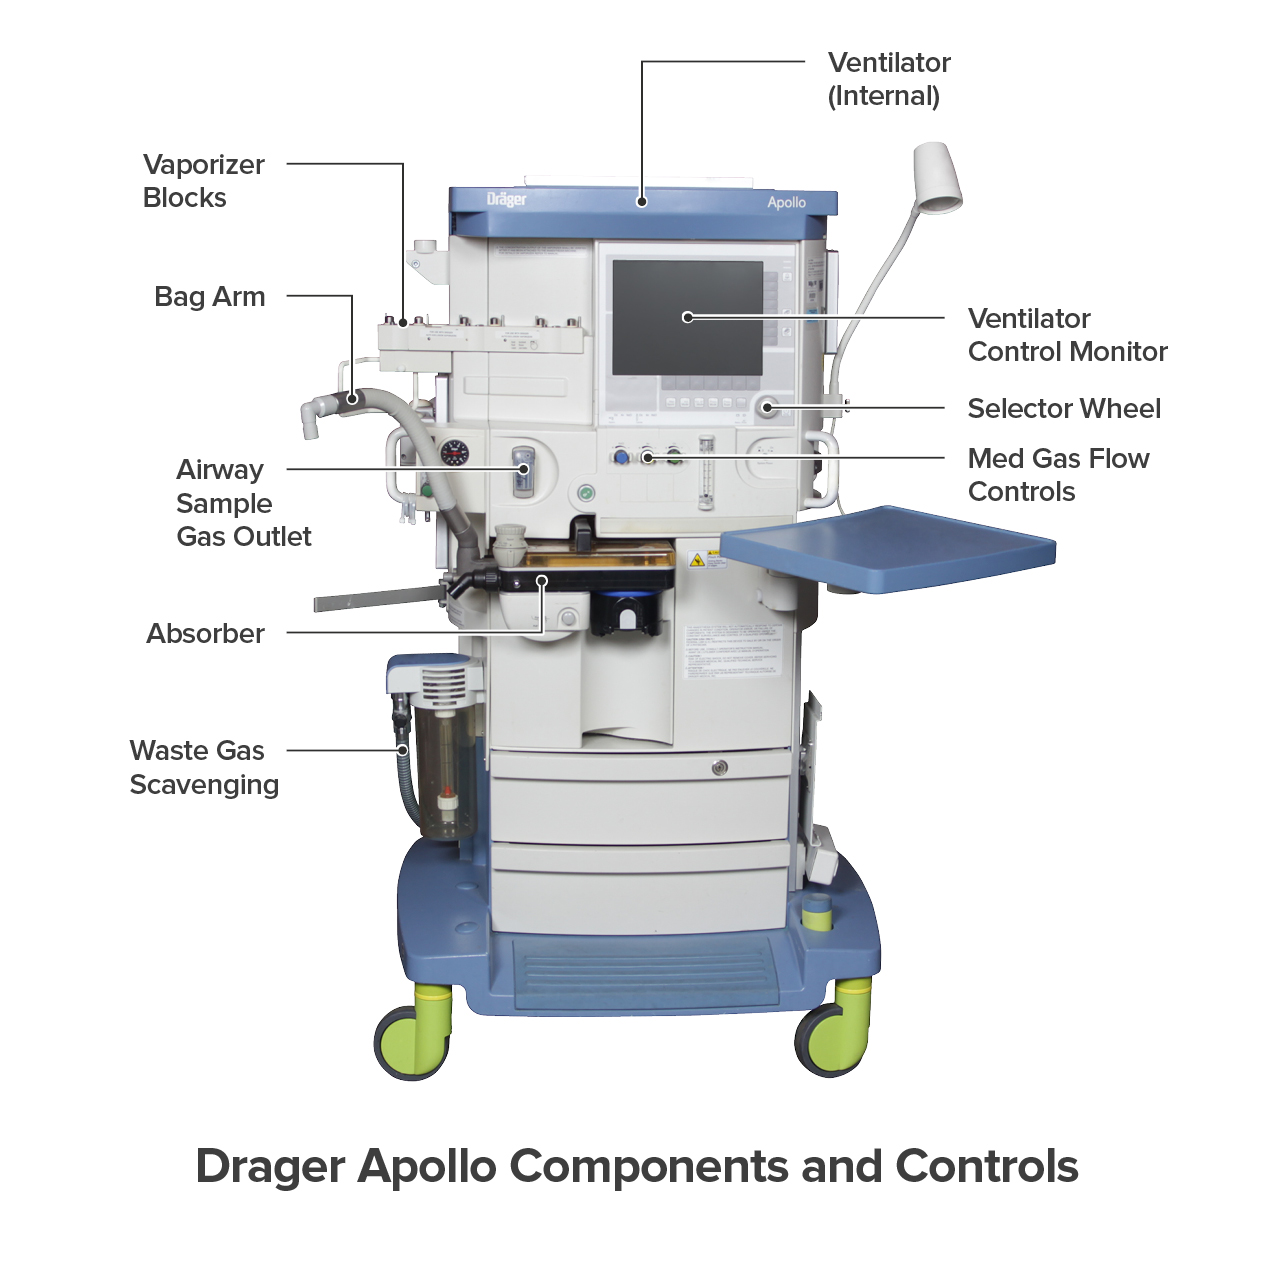 Drager Apollo Components and Controls